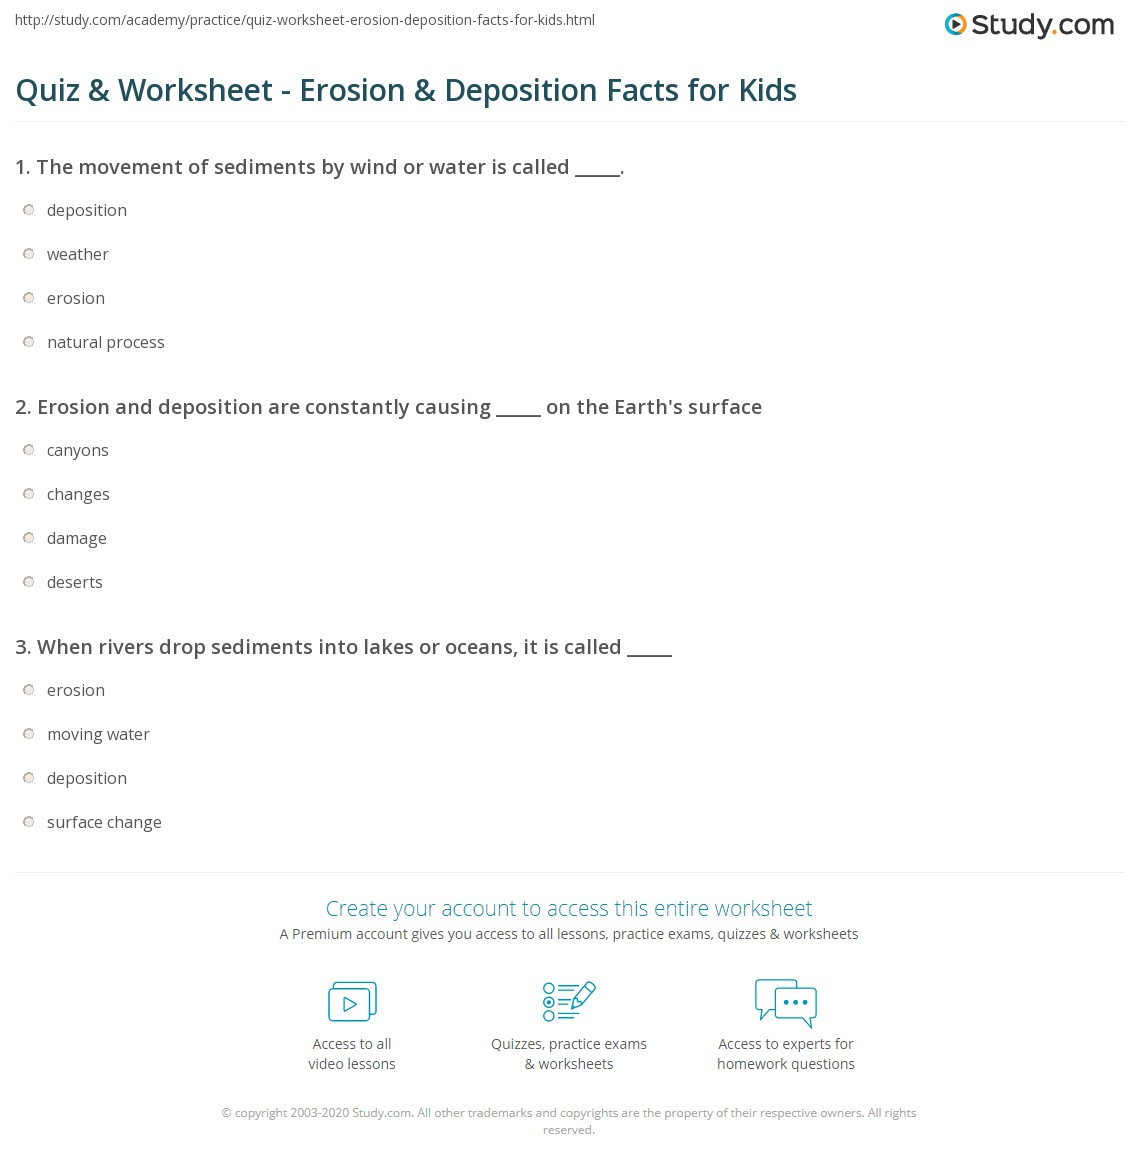 Worksheets Weathering And Erosion Worksheets For Kids weathering and erosion worksheets for kids science teaching resources worksheet